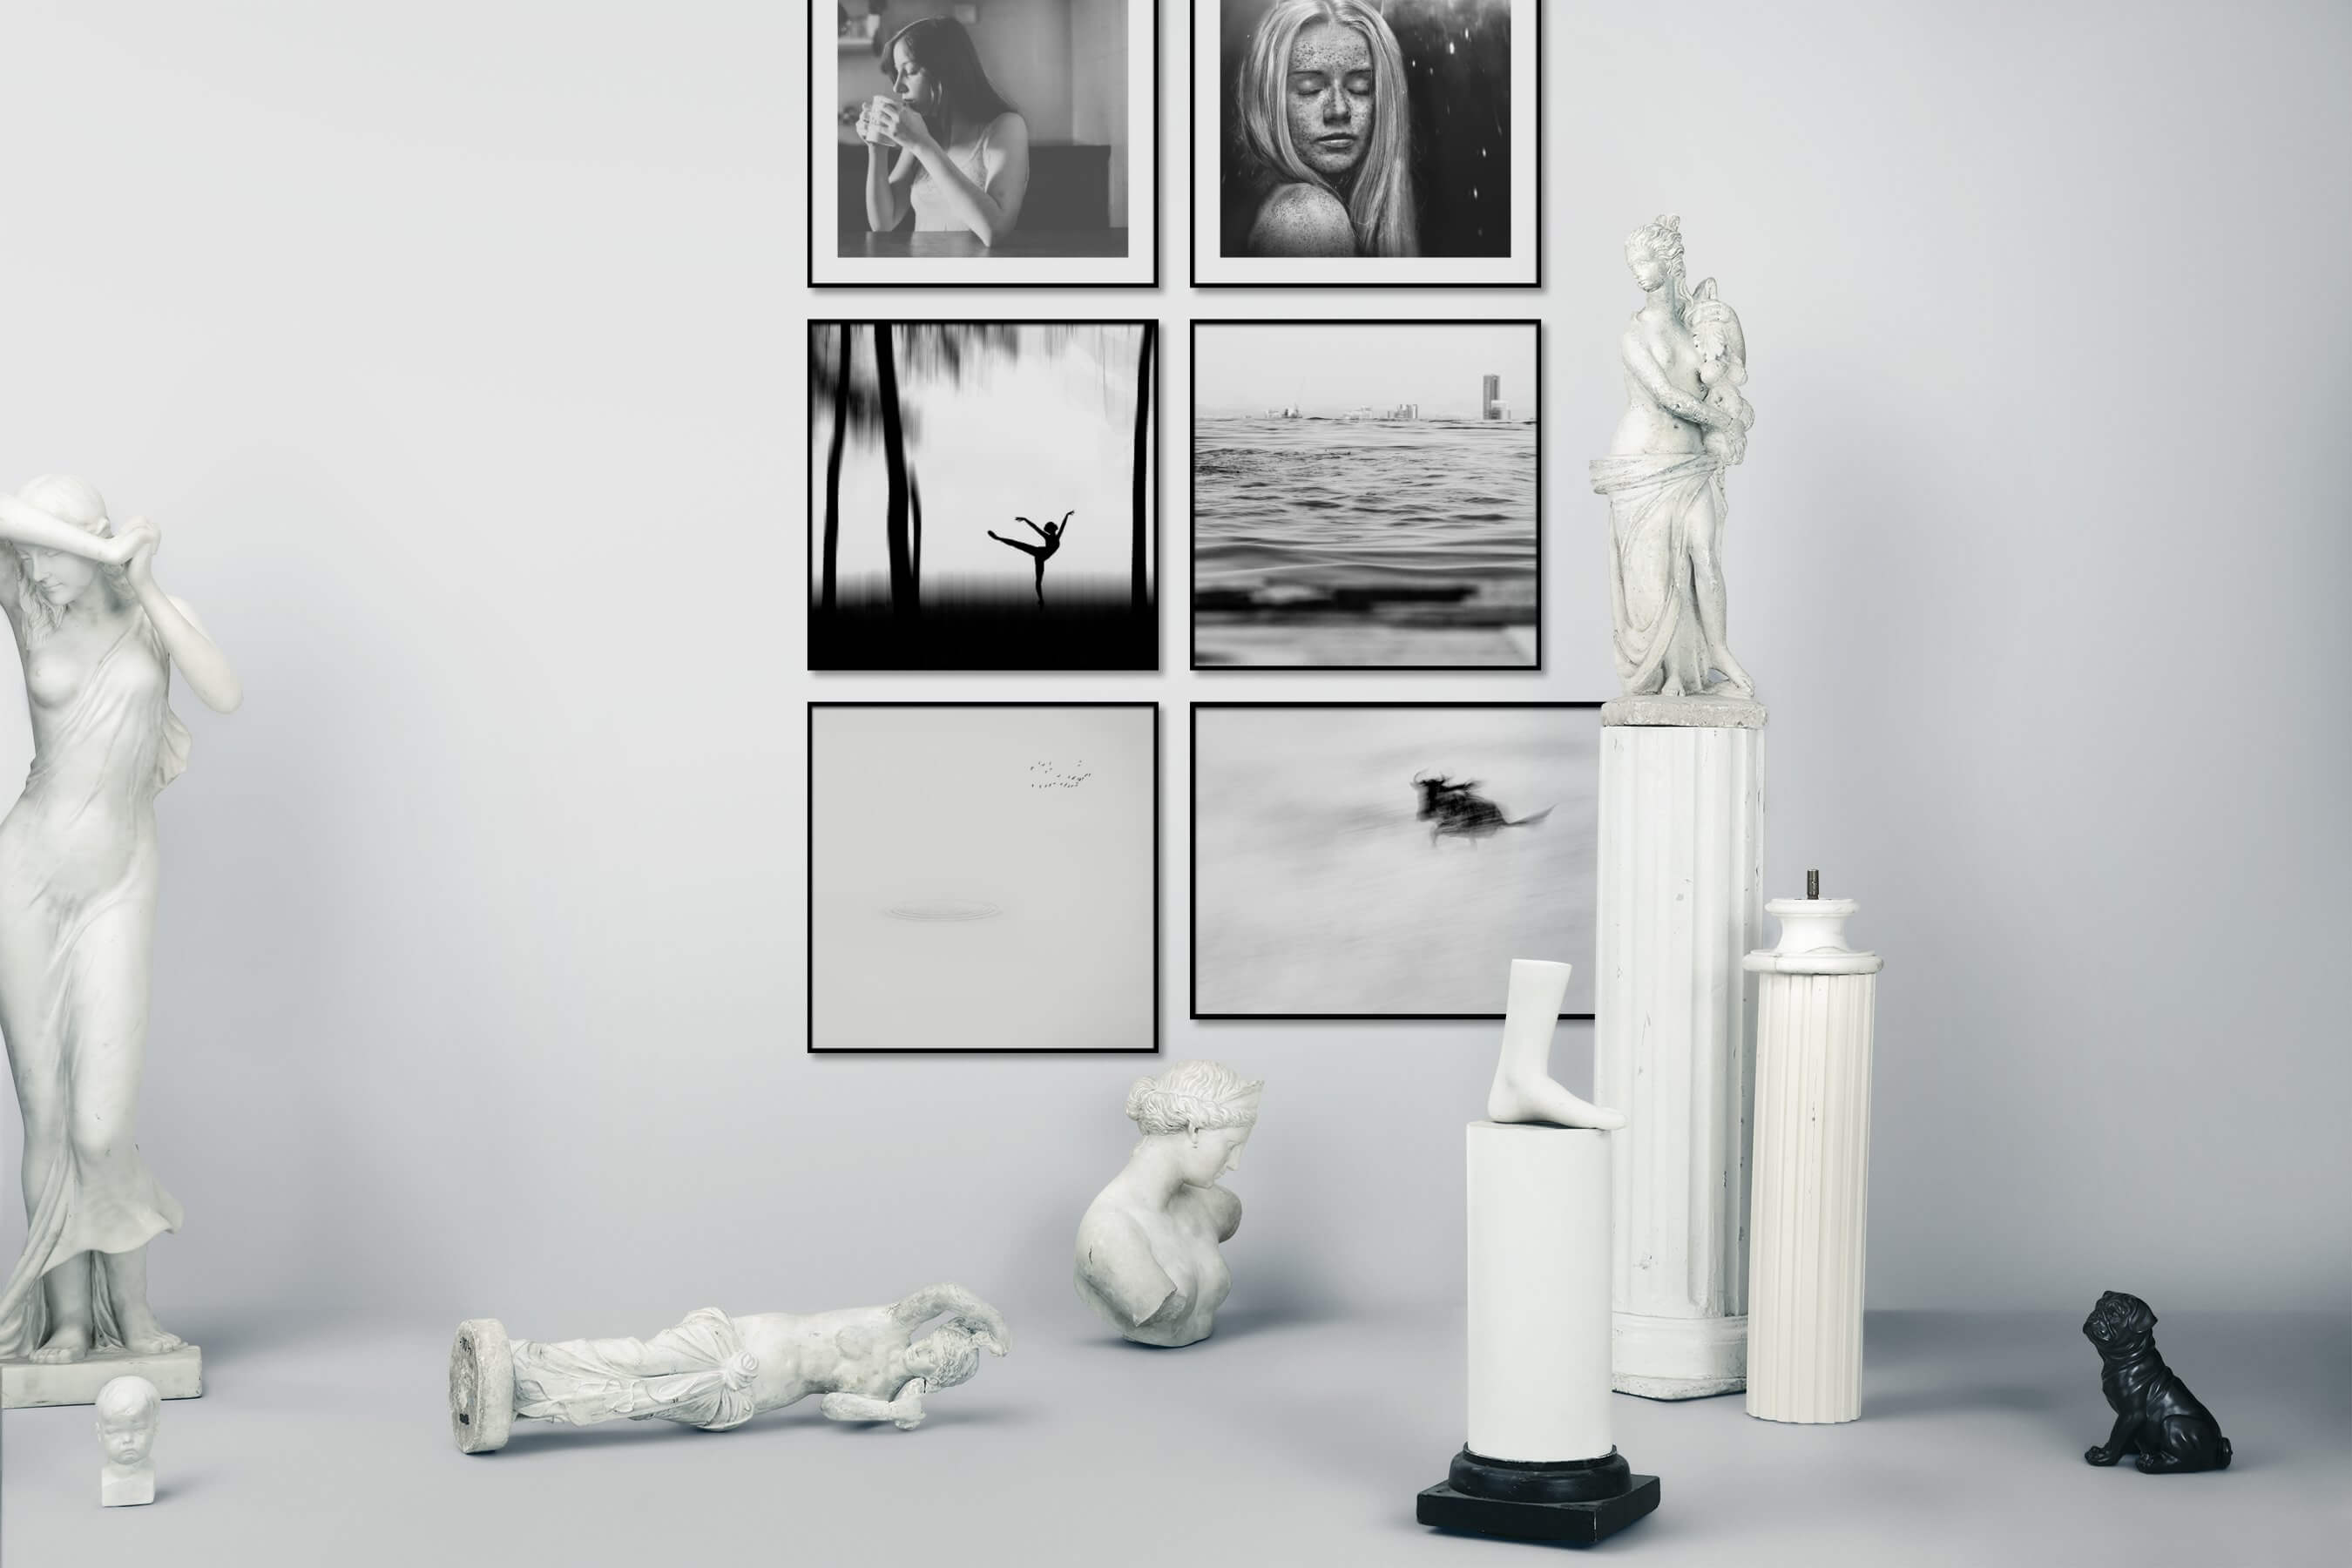 Gallery wall idea with six framed pictures arranged on a wall depicting Fashion & Beauty, Black & White, Mindfulness, For the Moderate, Beach & Water, City Life, Bright Tones, For the Minimalist, and Animals